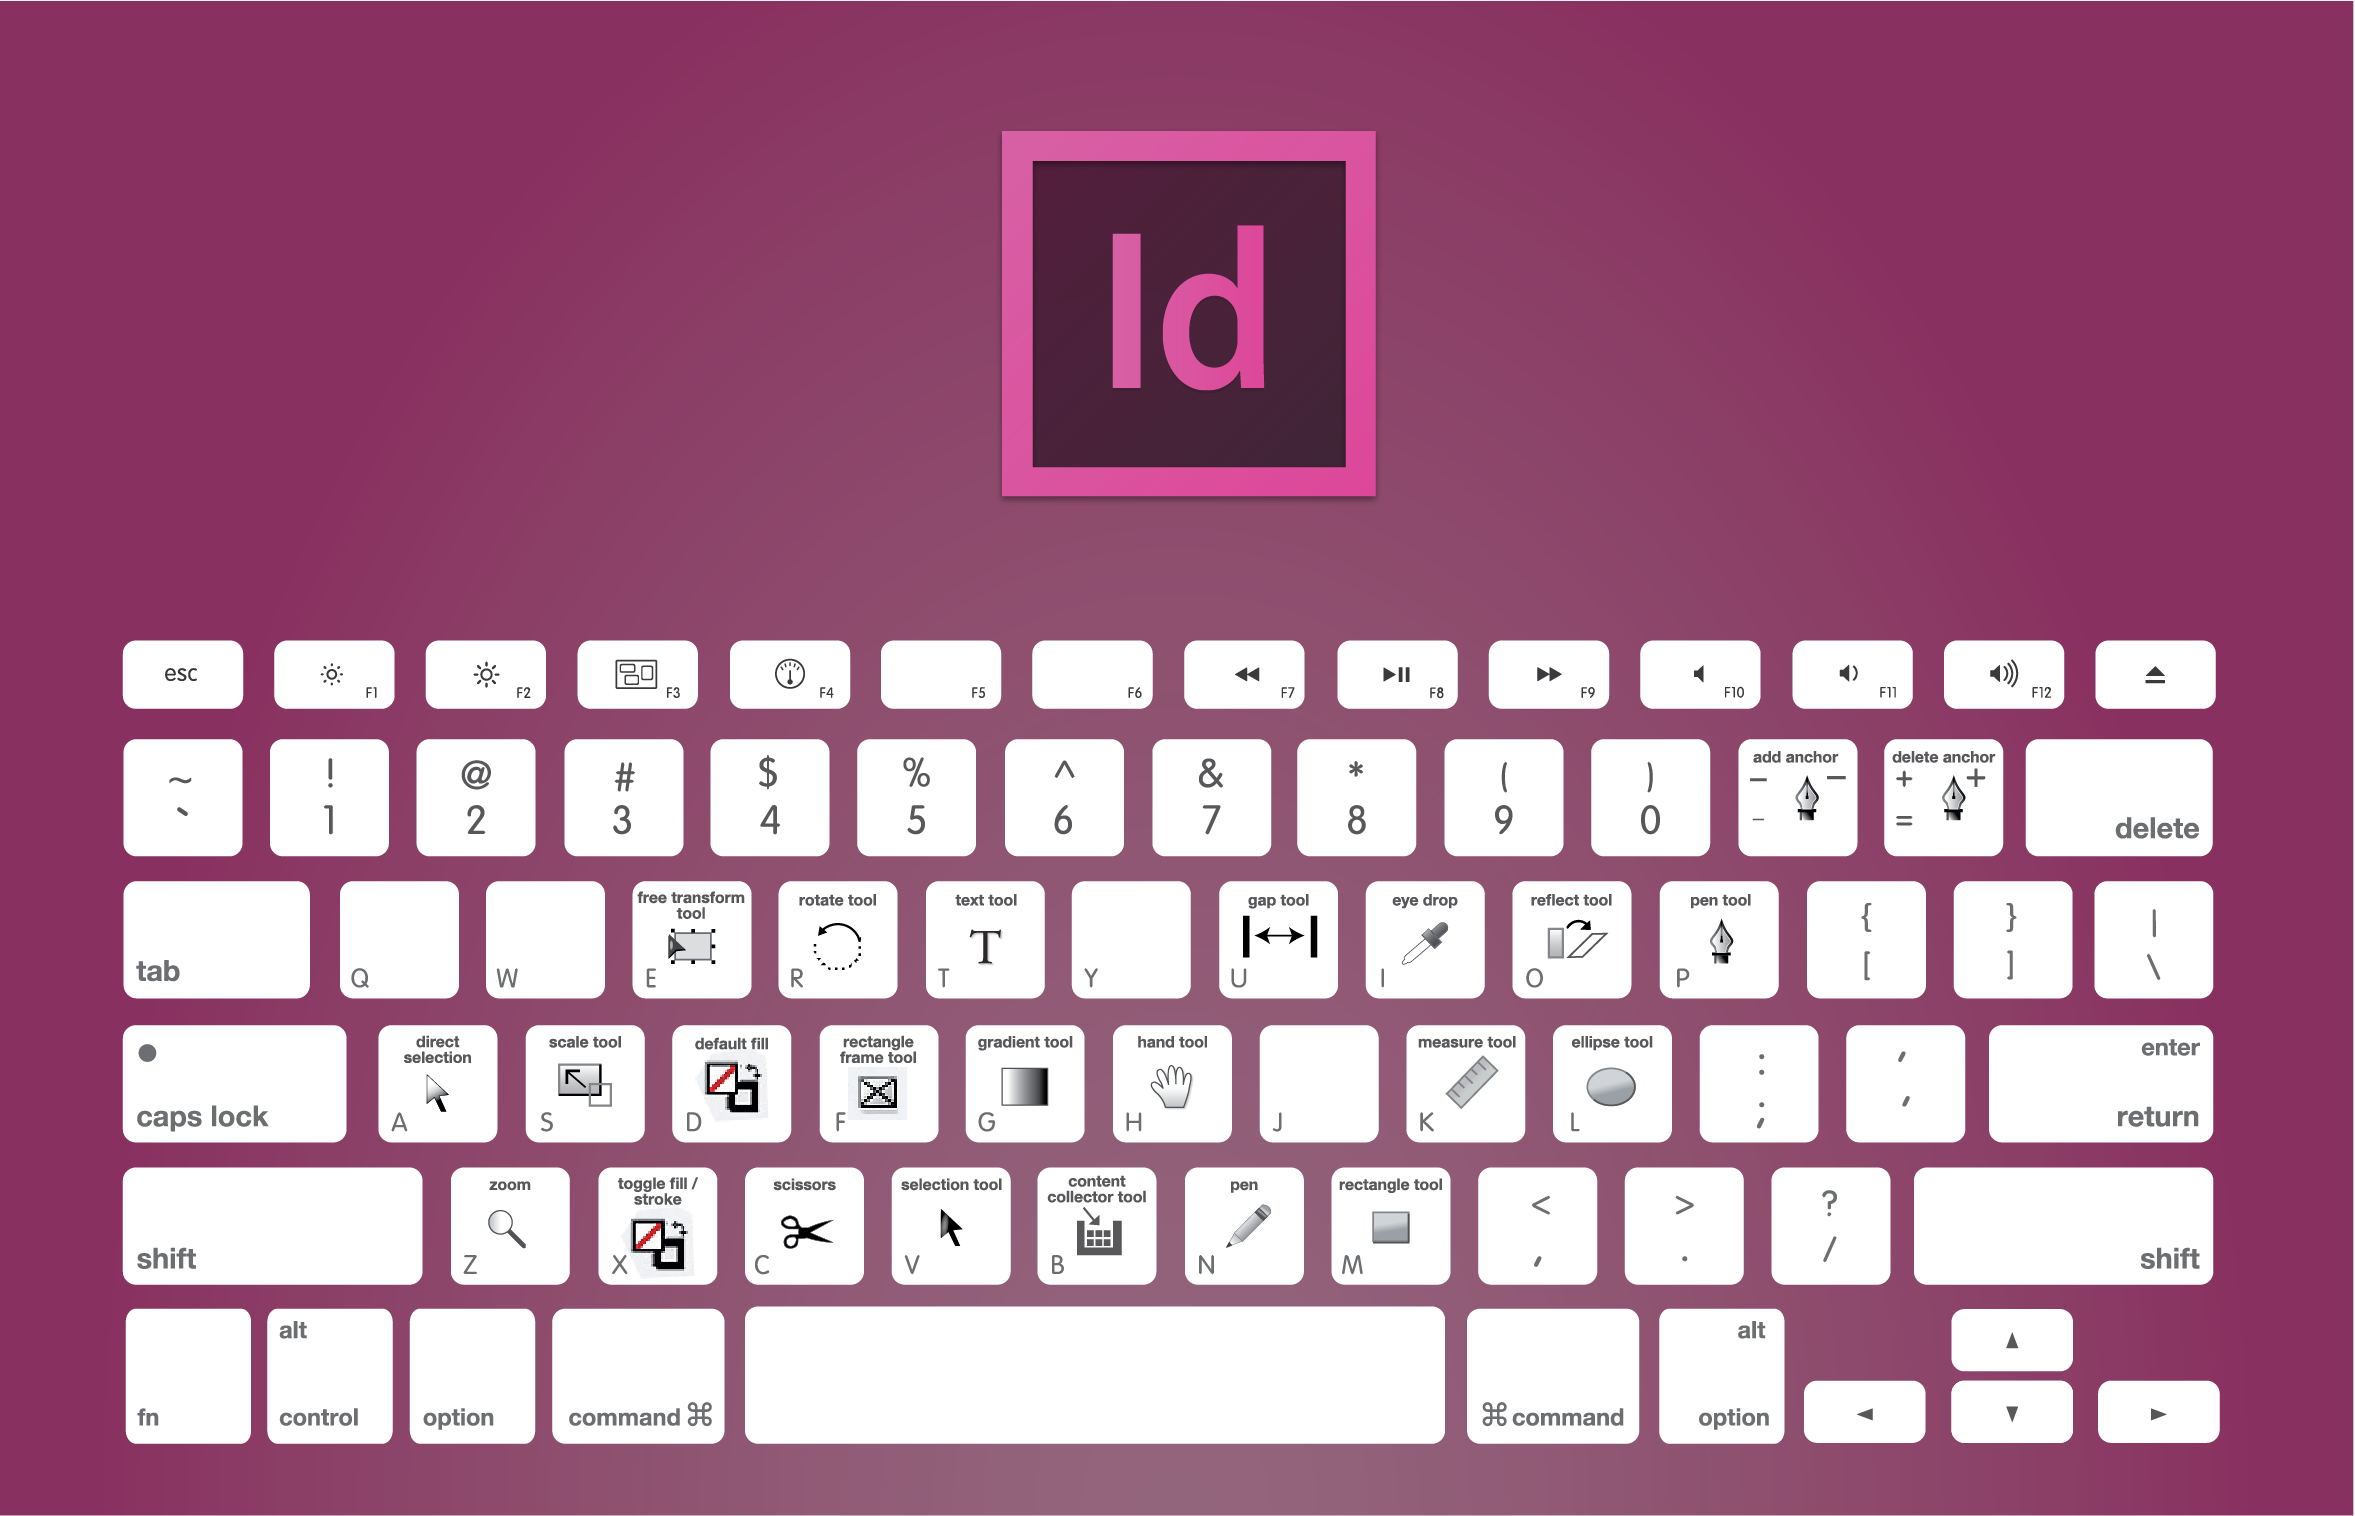 Chart of the keyboard shortcuts to use in Adobe InDesign: